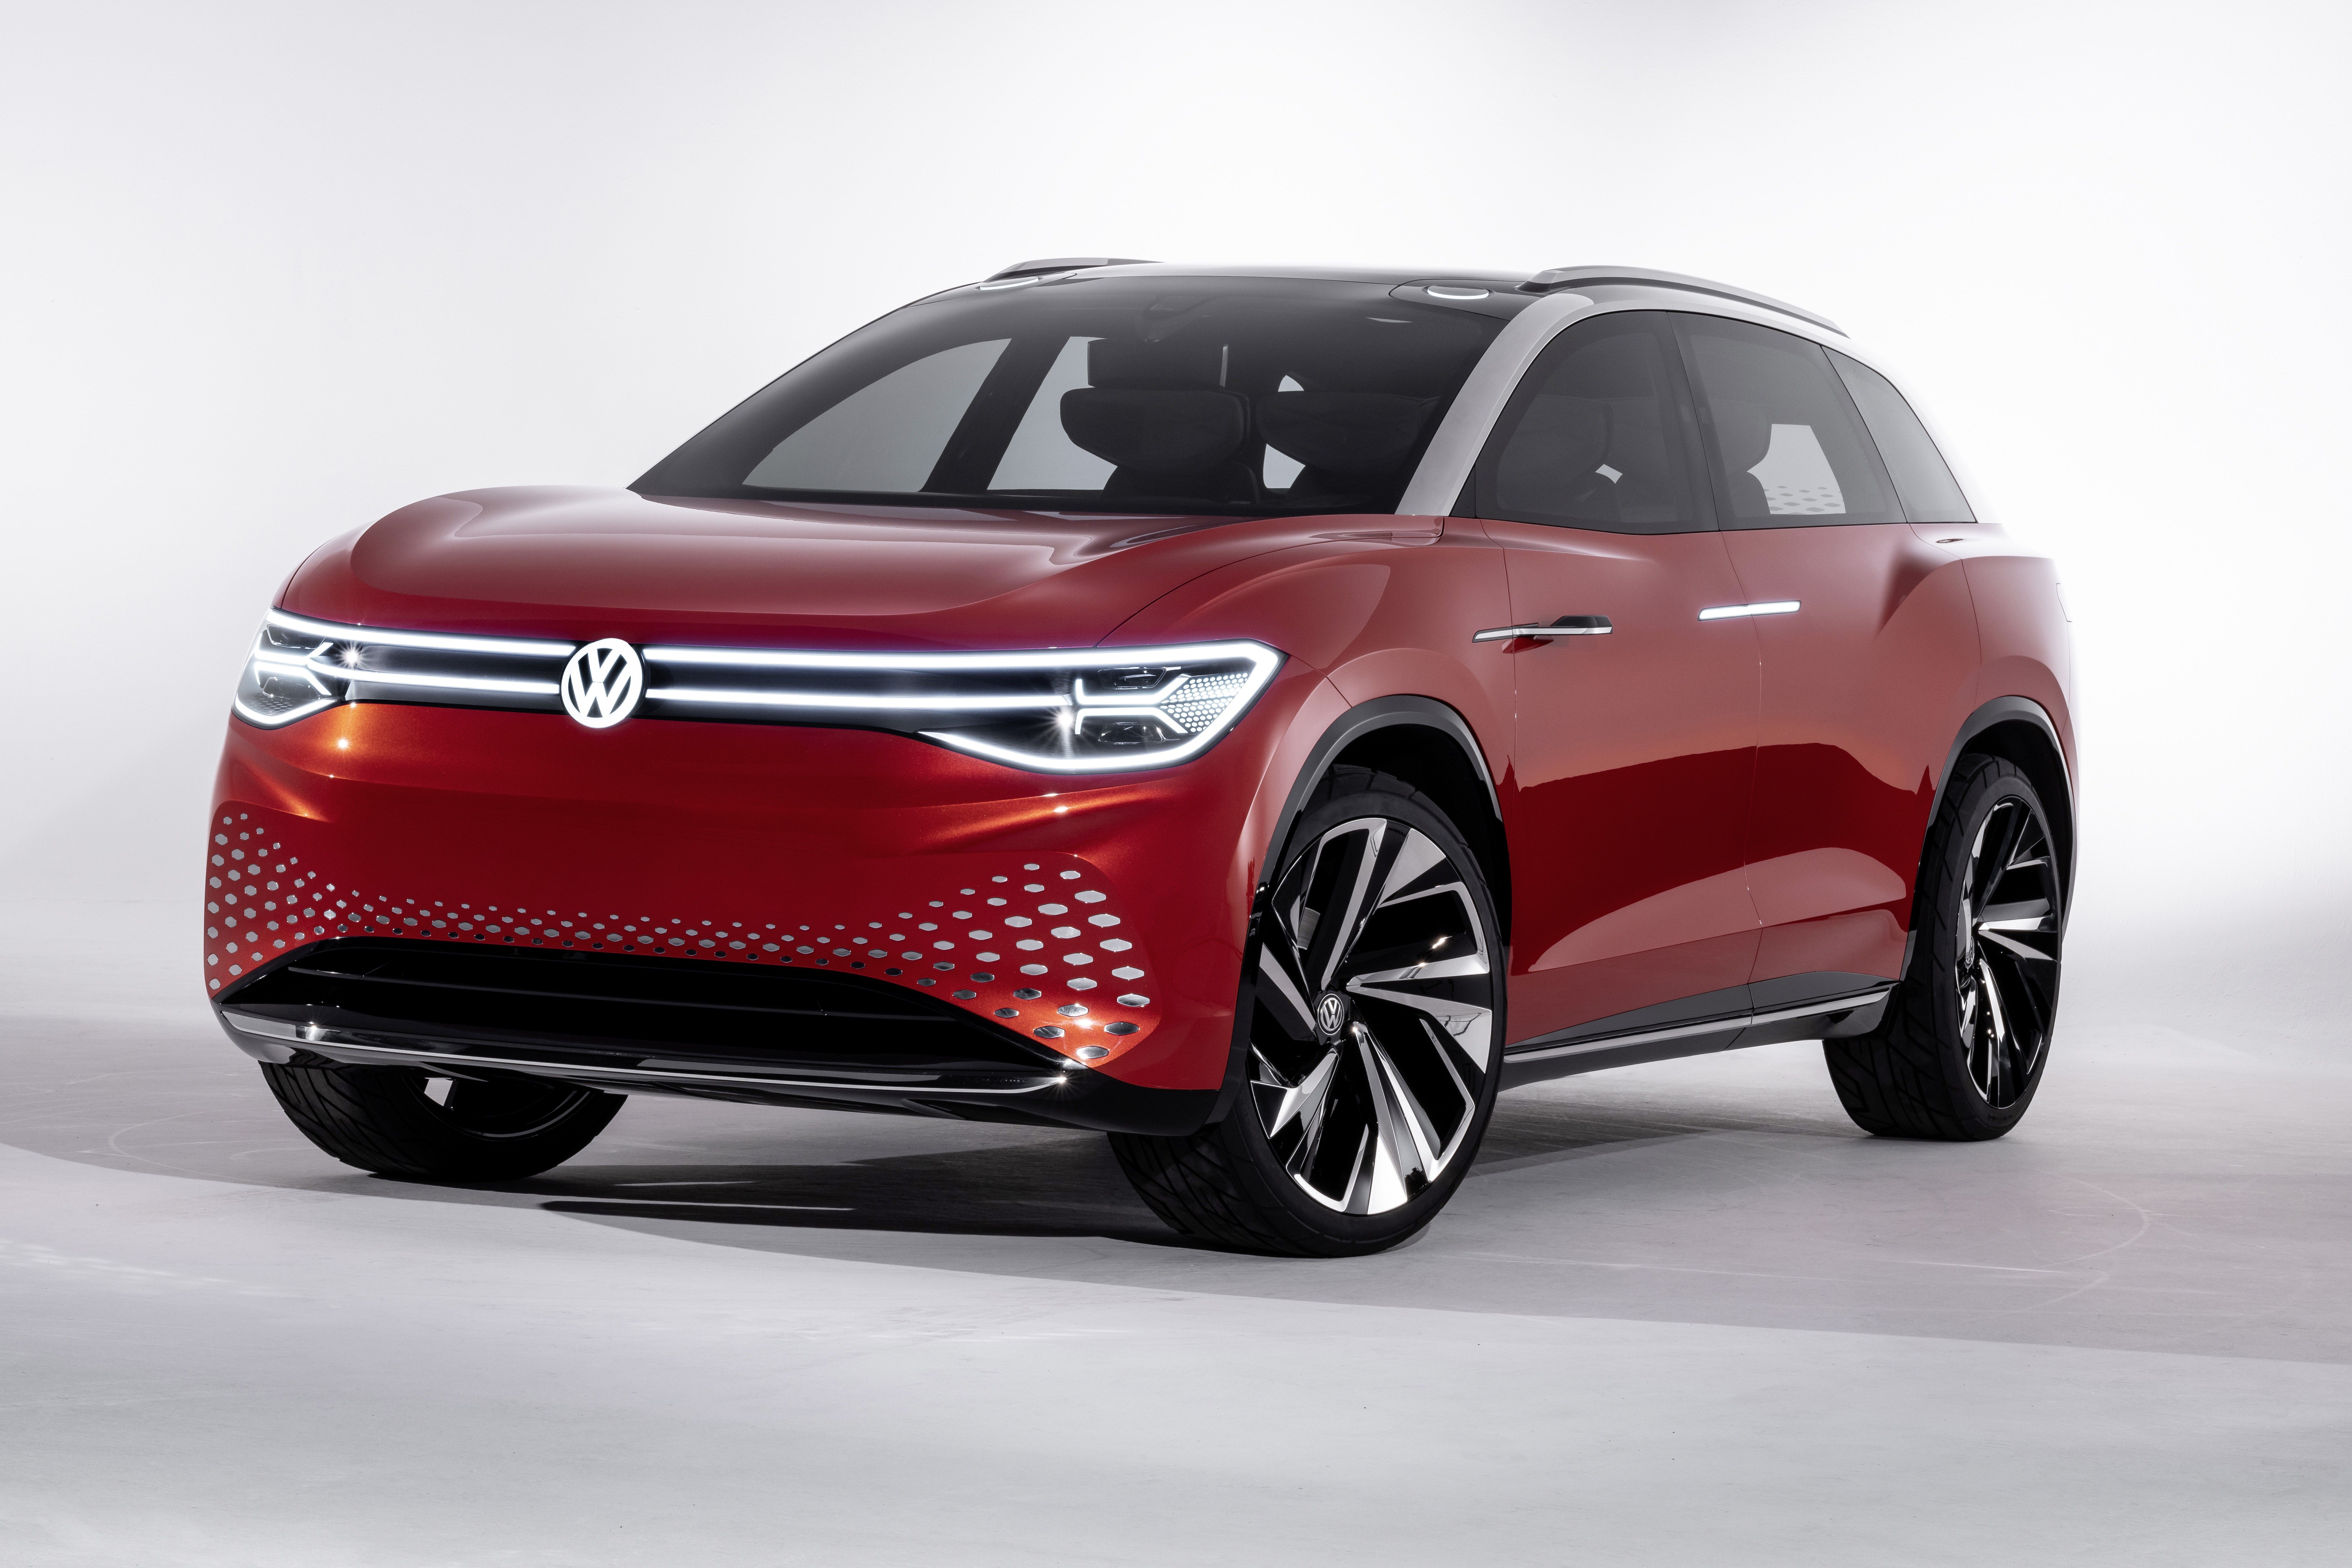 Volkswagen Says This I D Roomzz Electric Suv Concept Will Be Out In 2021